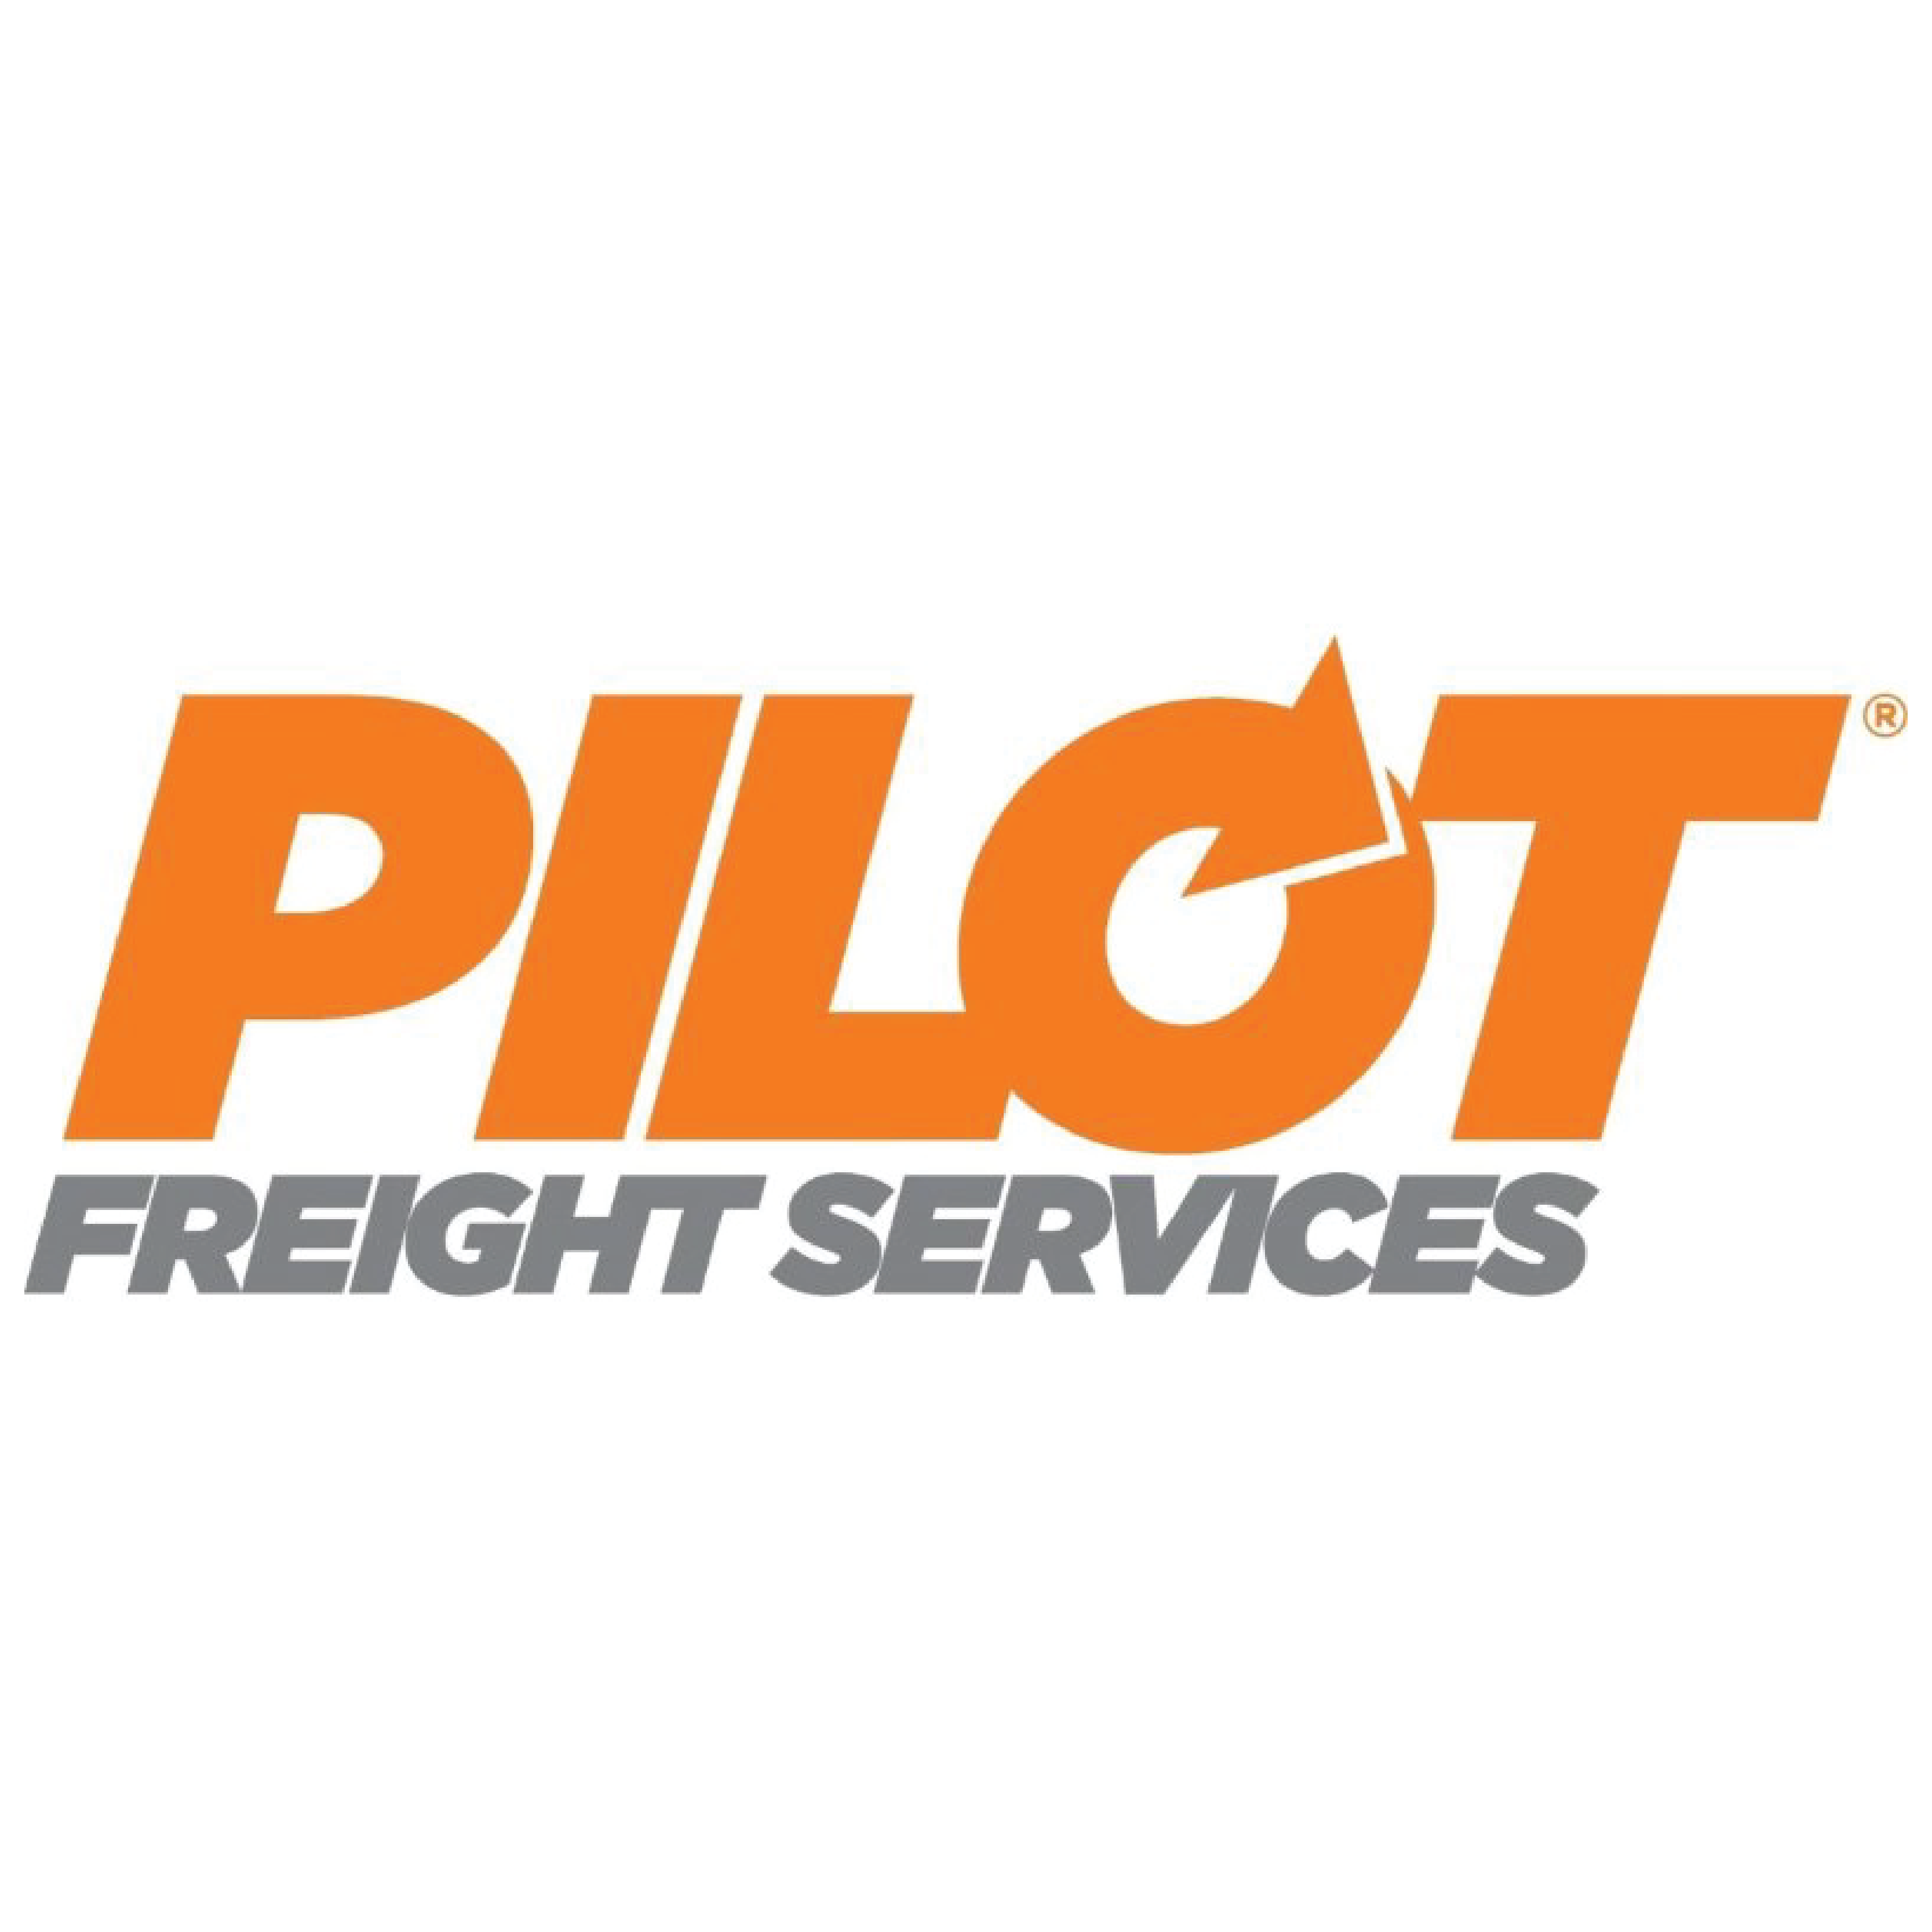 Pilot Freight Services Shipedge Integration